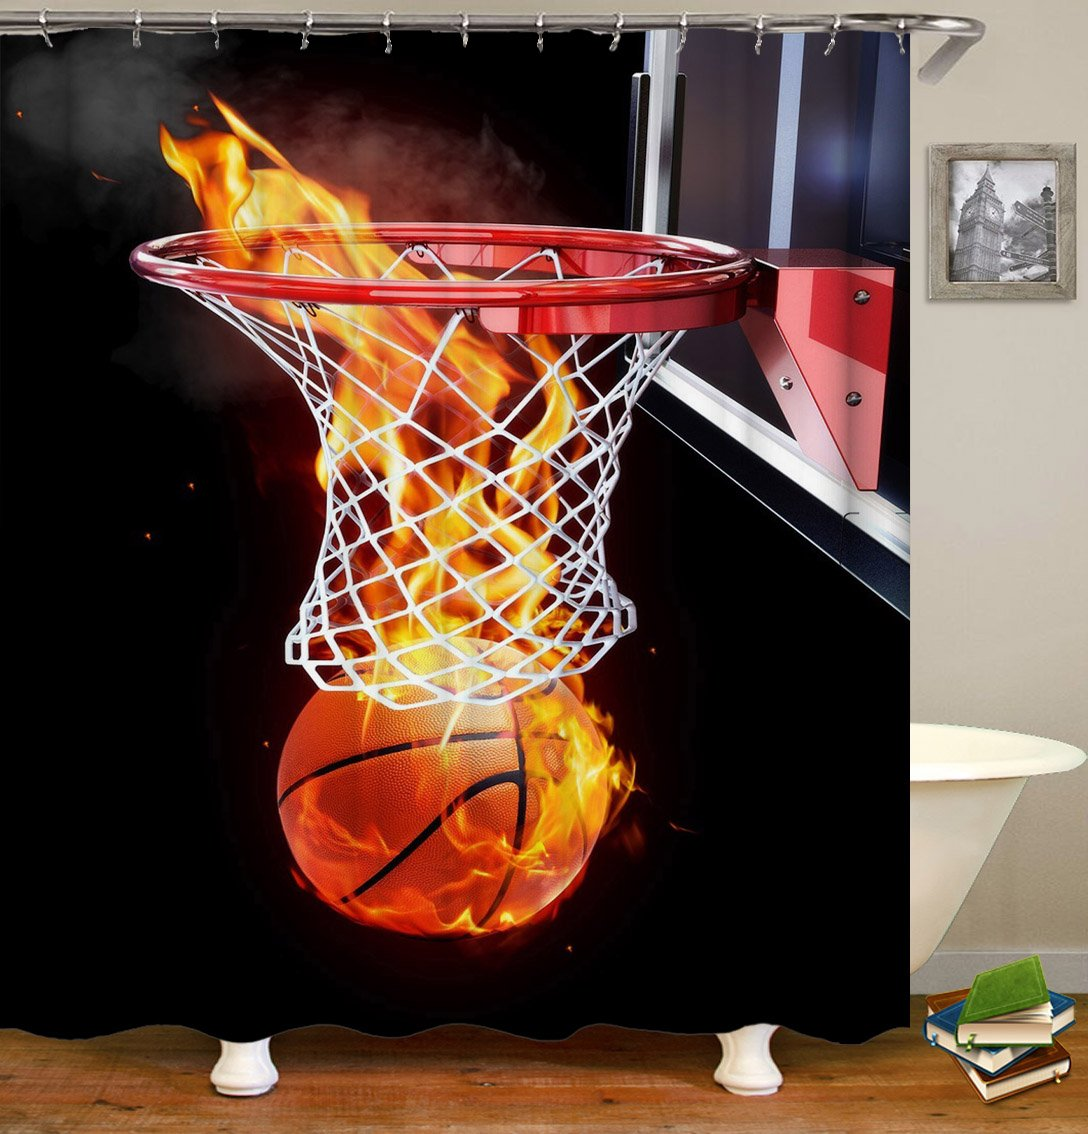 Livilan Basket Fan Shower Curtain Set, Inspiring Fire Basket Print, Thick Polyester Fabric, Mildew Mold Resistant Waterproof Machine Washable, 72 X 72 inch, Black Coral